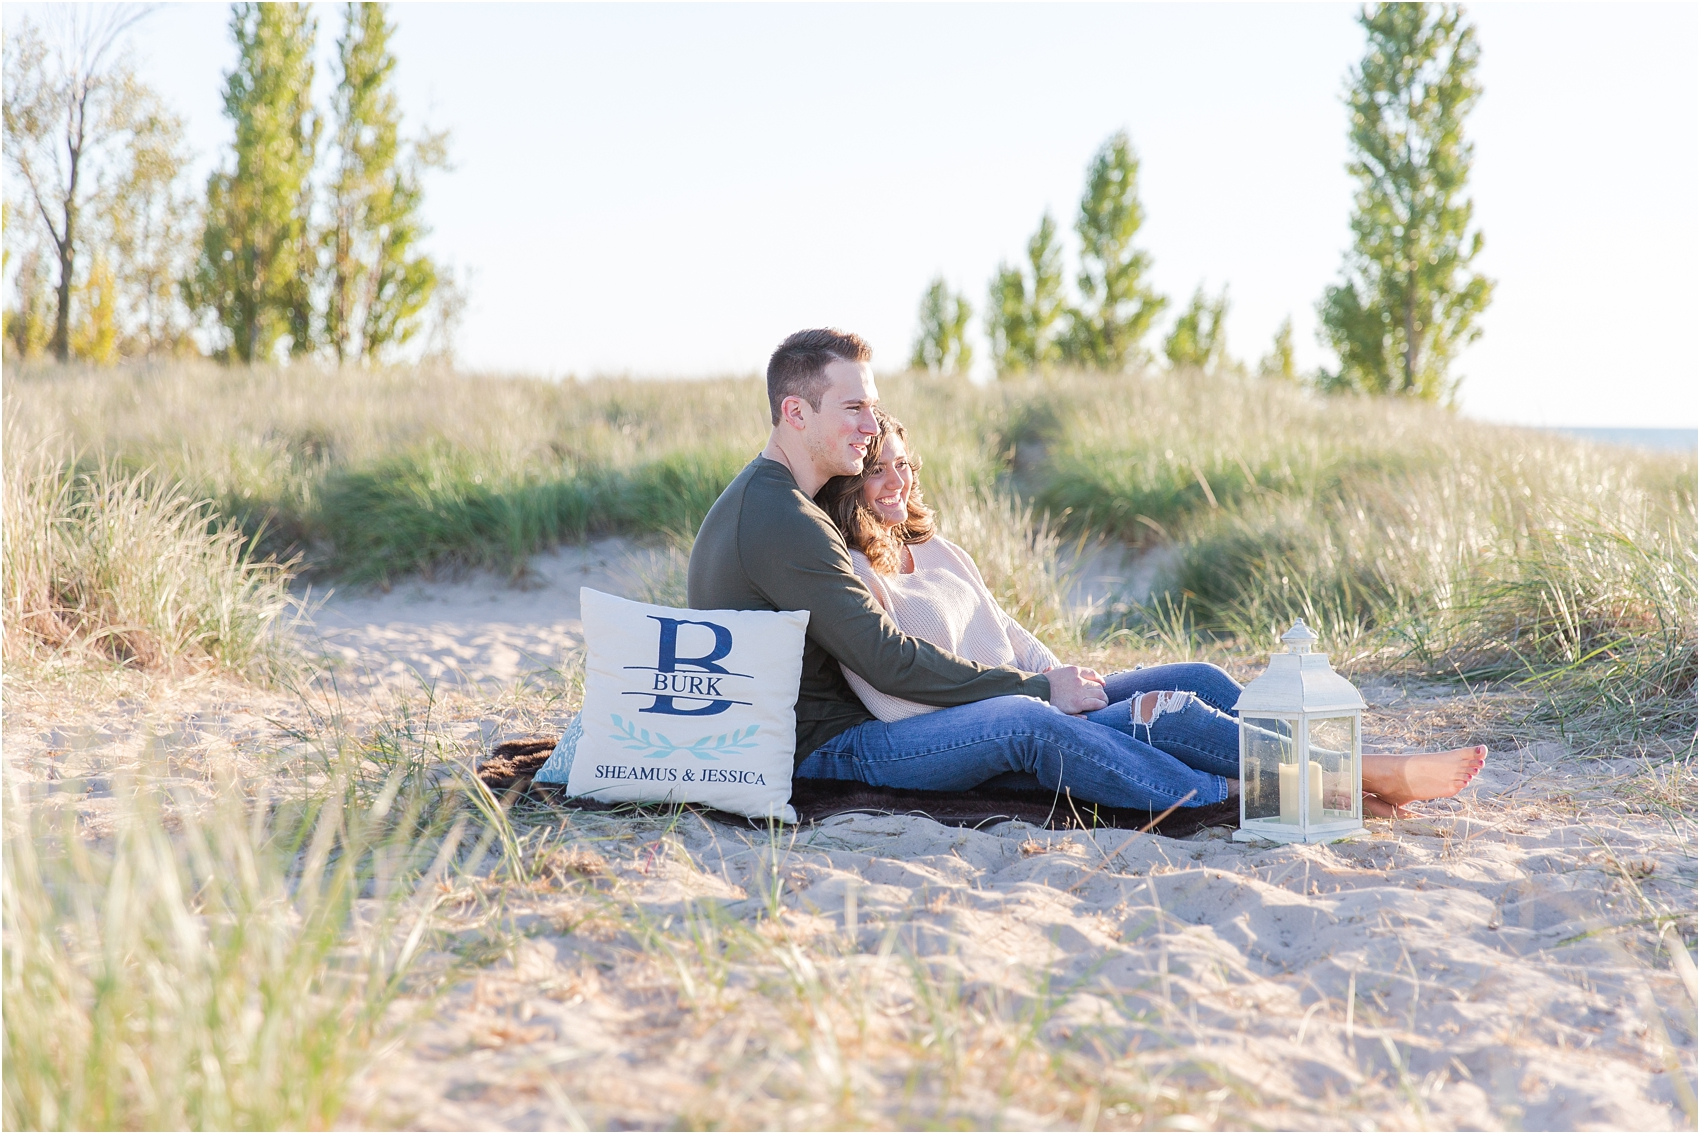 candid-end-of-summer-sunset-engagement-photos-at-silver-beach-in-st-joseph-mi-by-courtney-carolyn-photography_0017.jpg